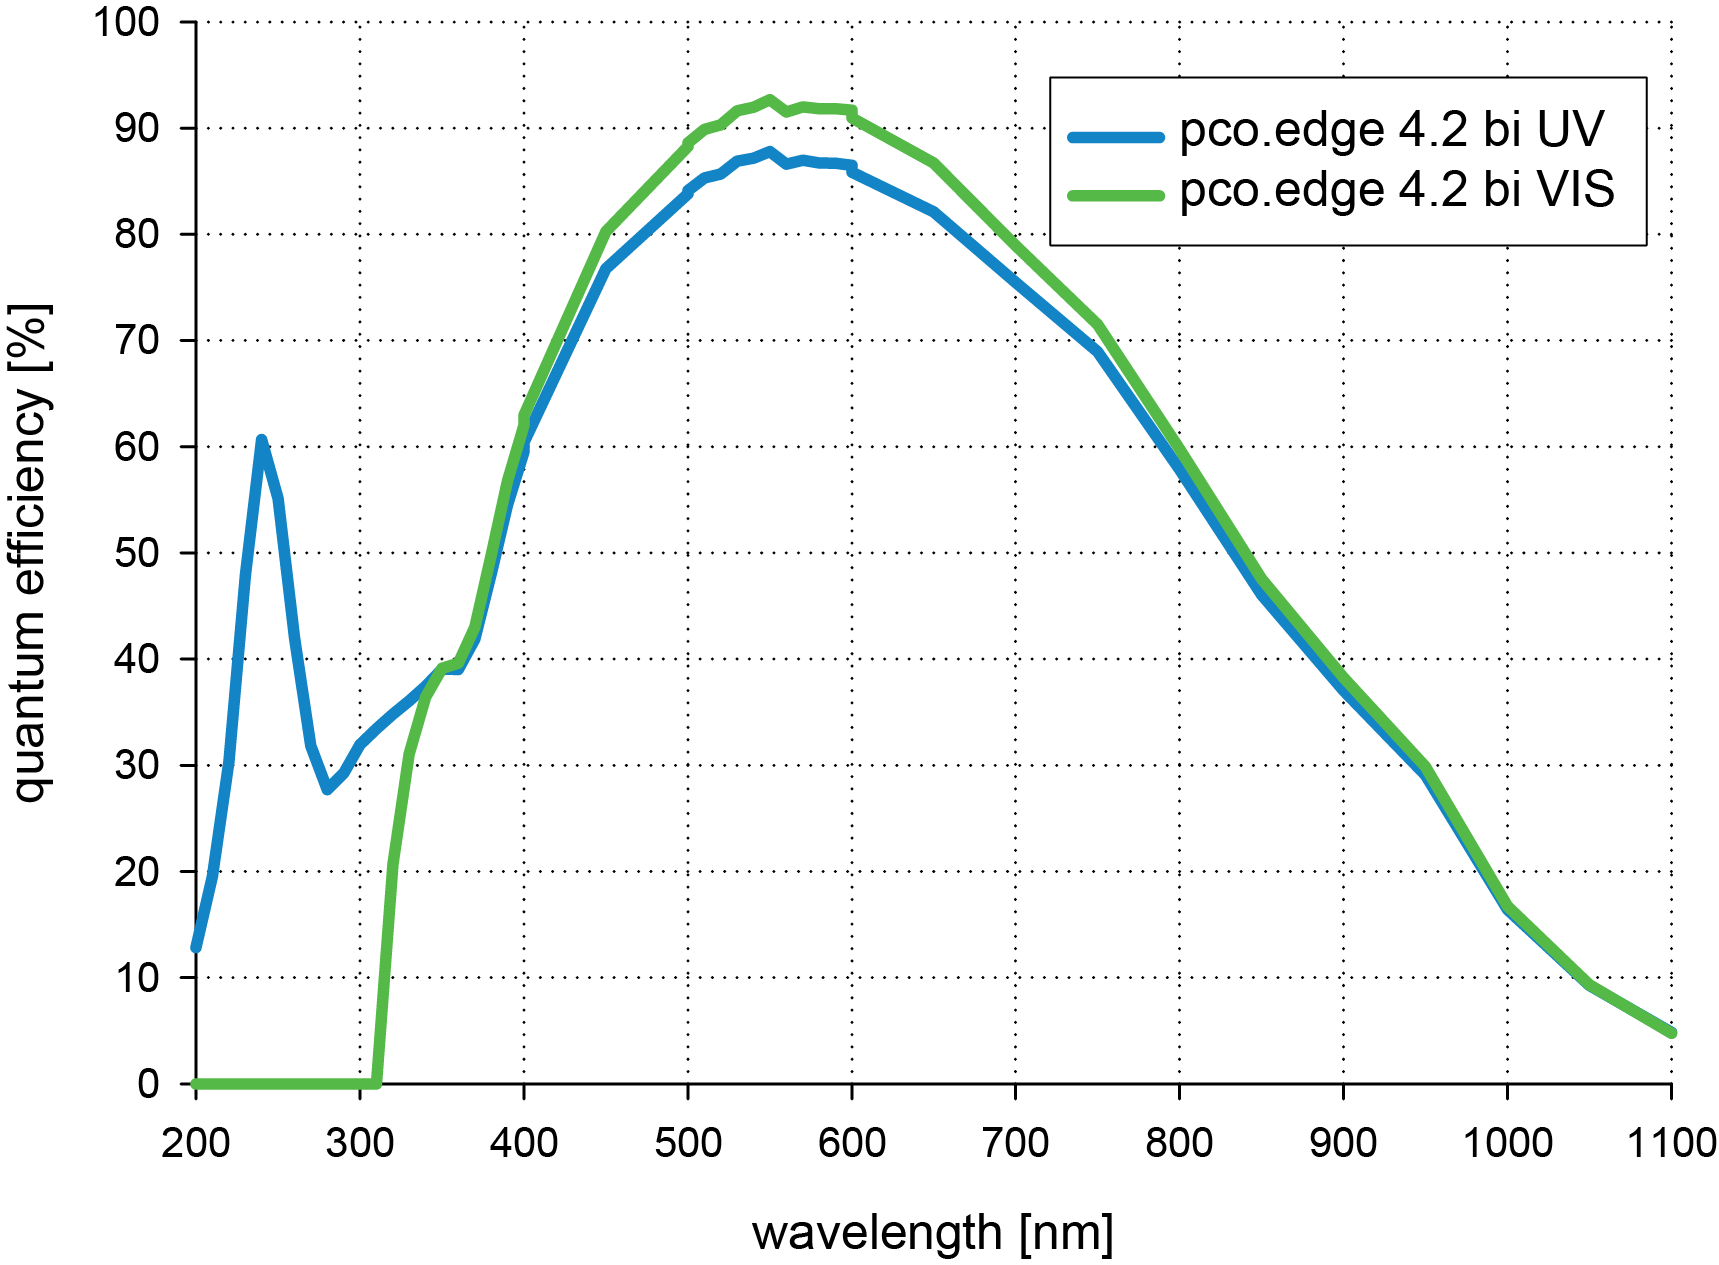 QE curve comparision of pco.edge 42 bi and vis